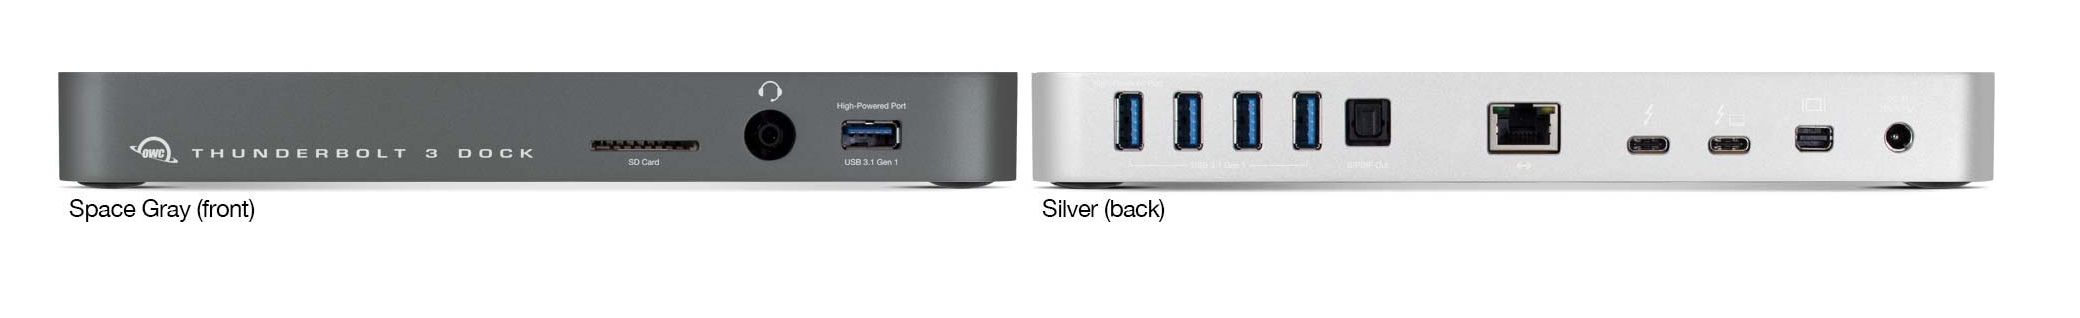 Product Review: OWC Thunderbolt 3 Dock 10